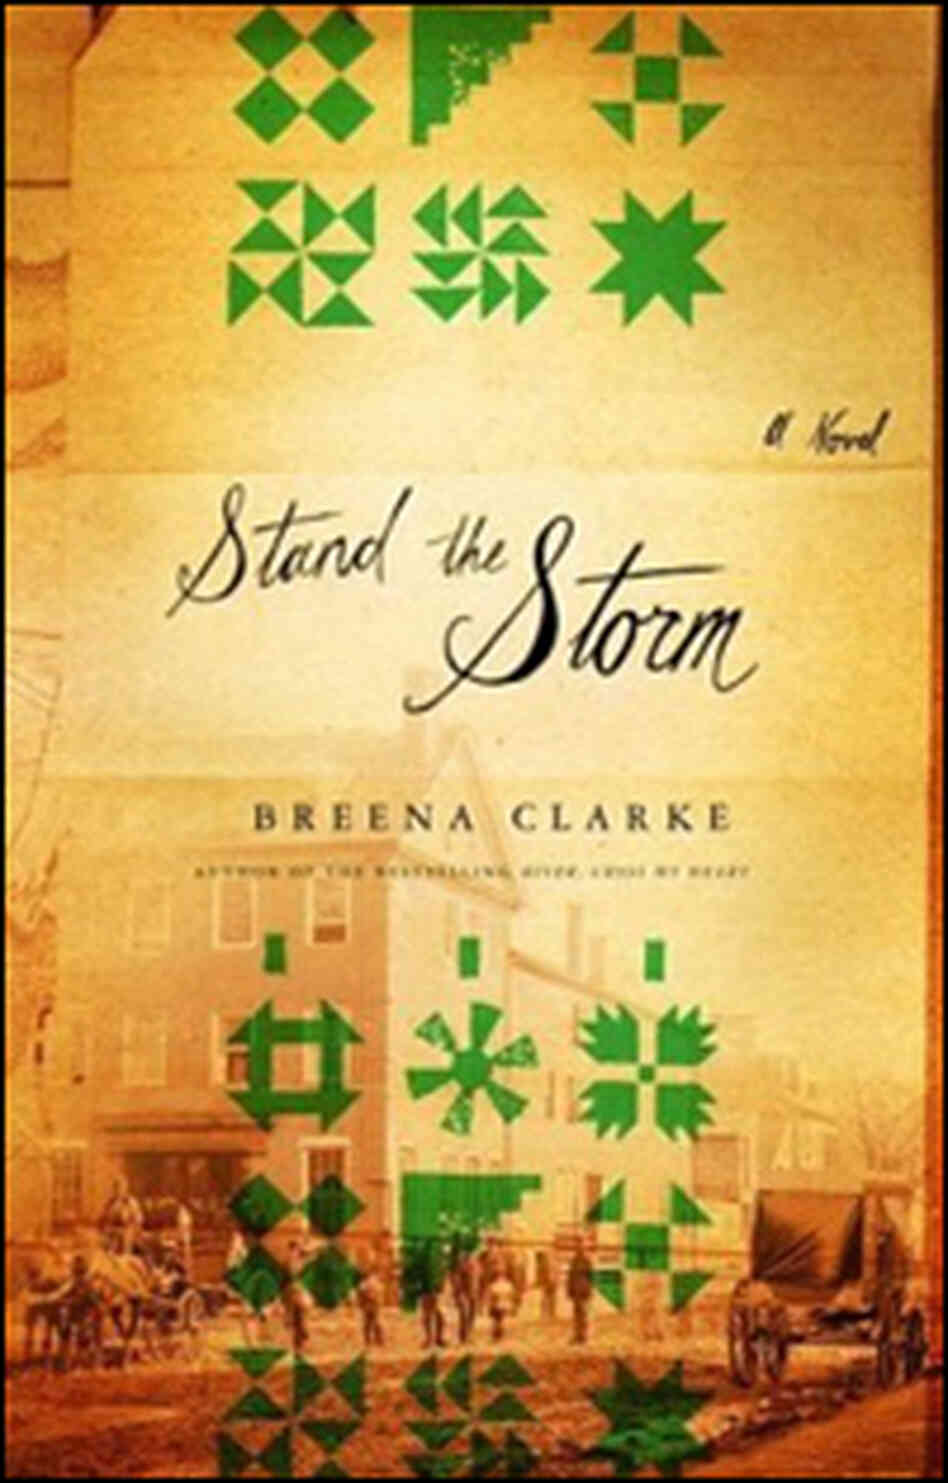 Cover of Breena Clarke's 'Stand the Storm'